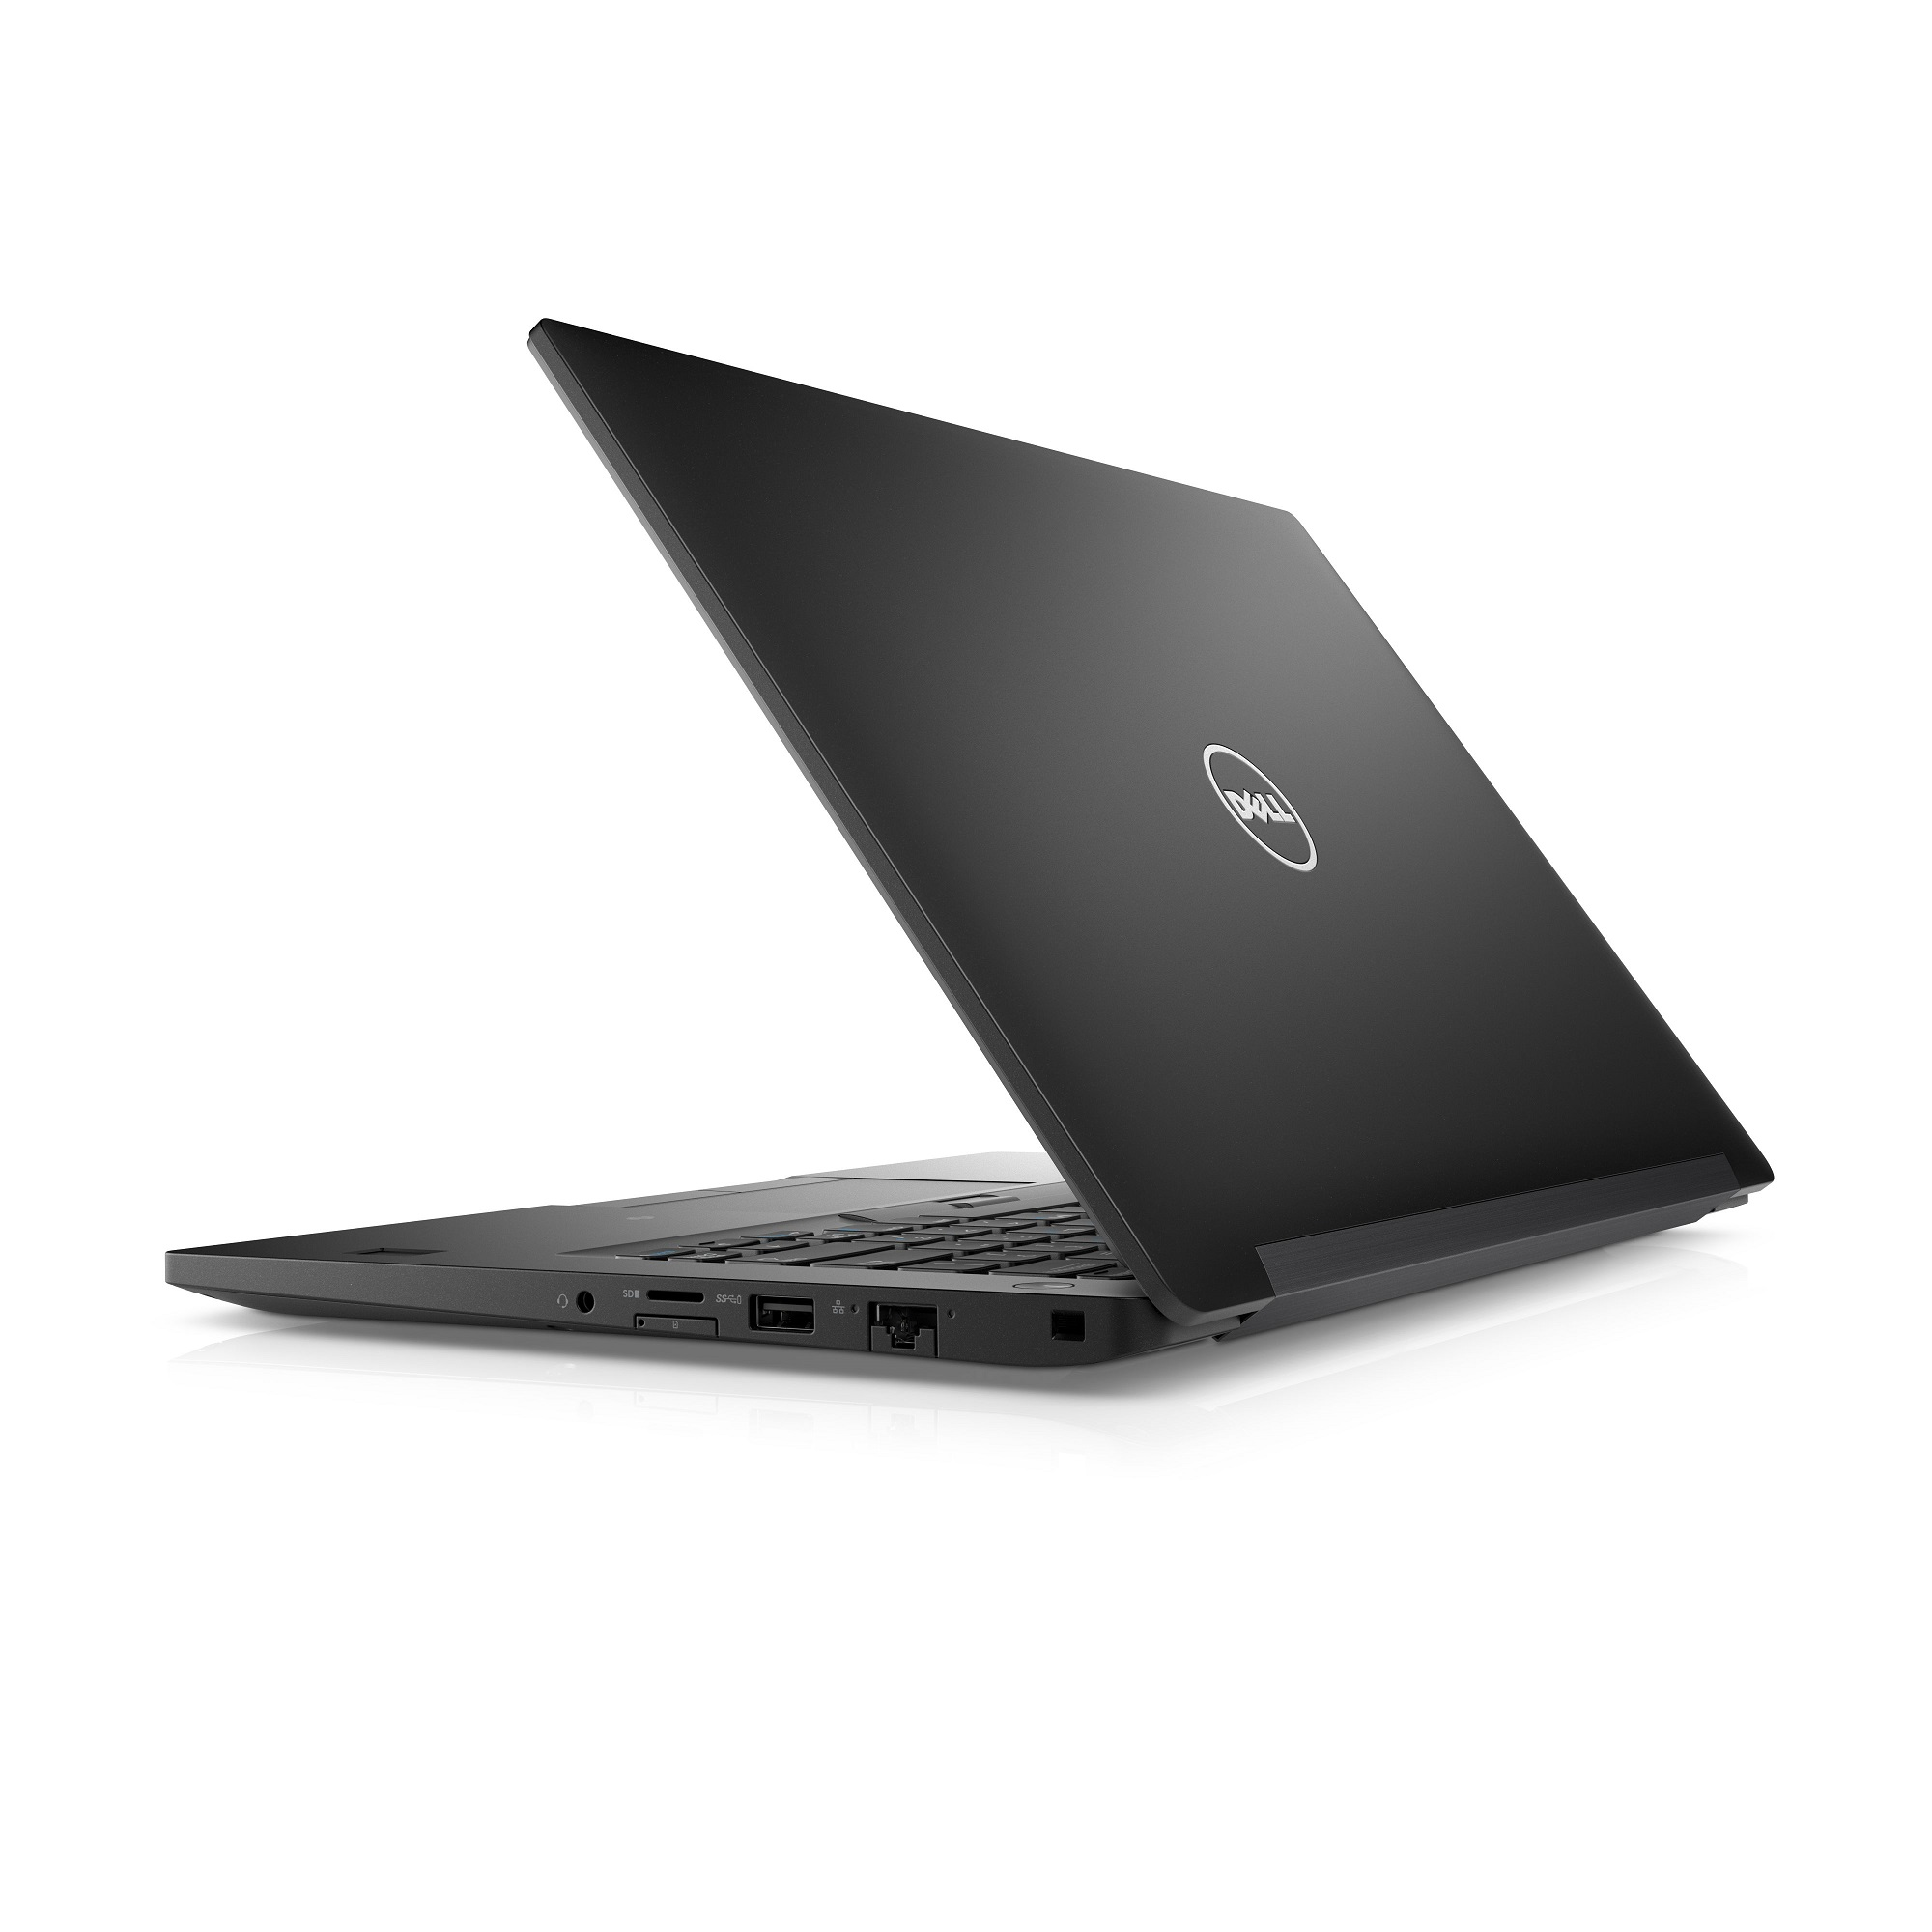 "DELL Latitude 7480/i5-7300U/8GB/256GB SSD/Intel HD 620/14.0"" FHD/Win 10 Pro 64bit/Black"